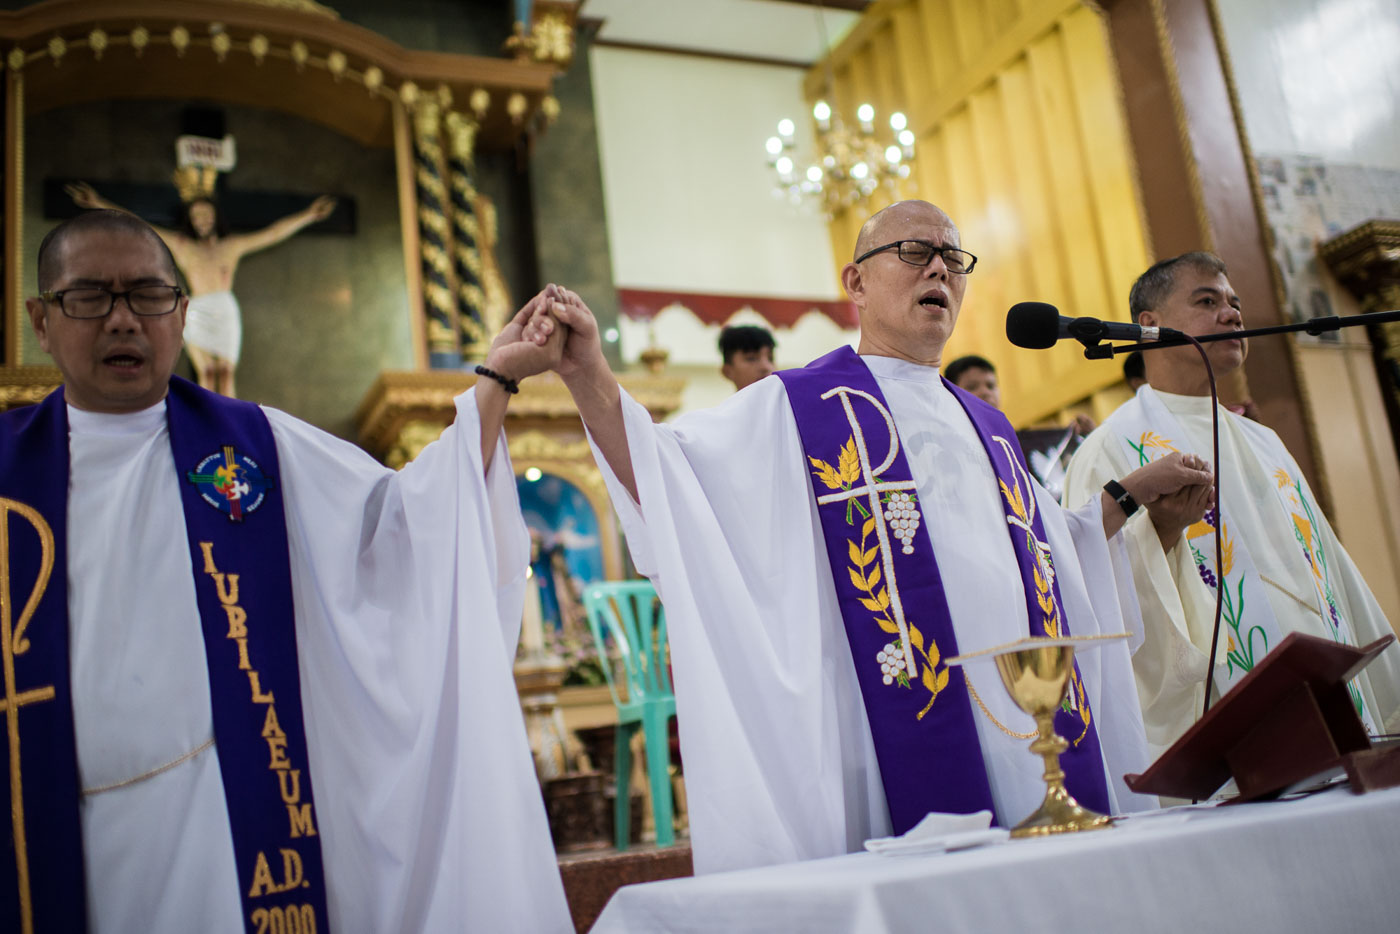 MASS FOR KIAN. Fr Flavie Villanueva, Fr Robert Reyes, and Fr George Alfonso sing the Lord's Prayer at the mass for Kian delos Santos on August 25, 2017. Photo by Eloisa Lopez/Rappler